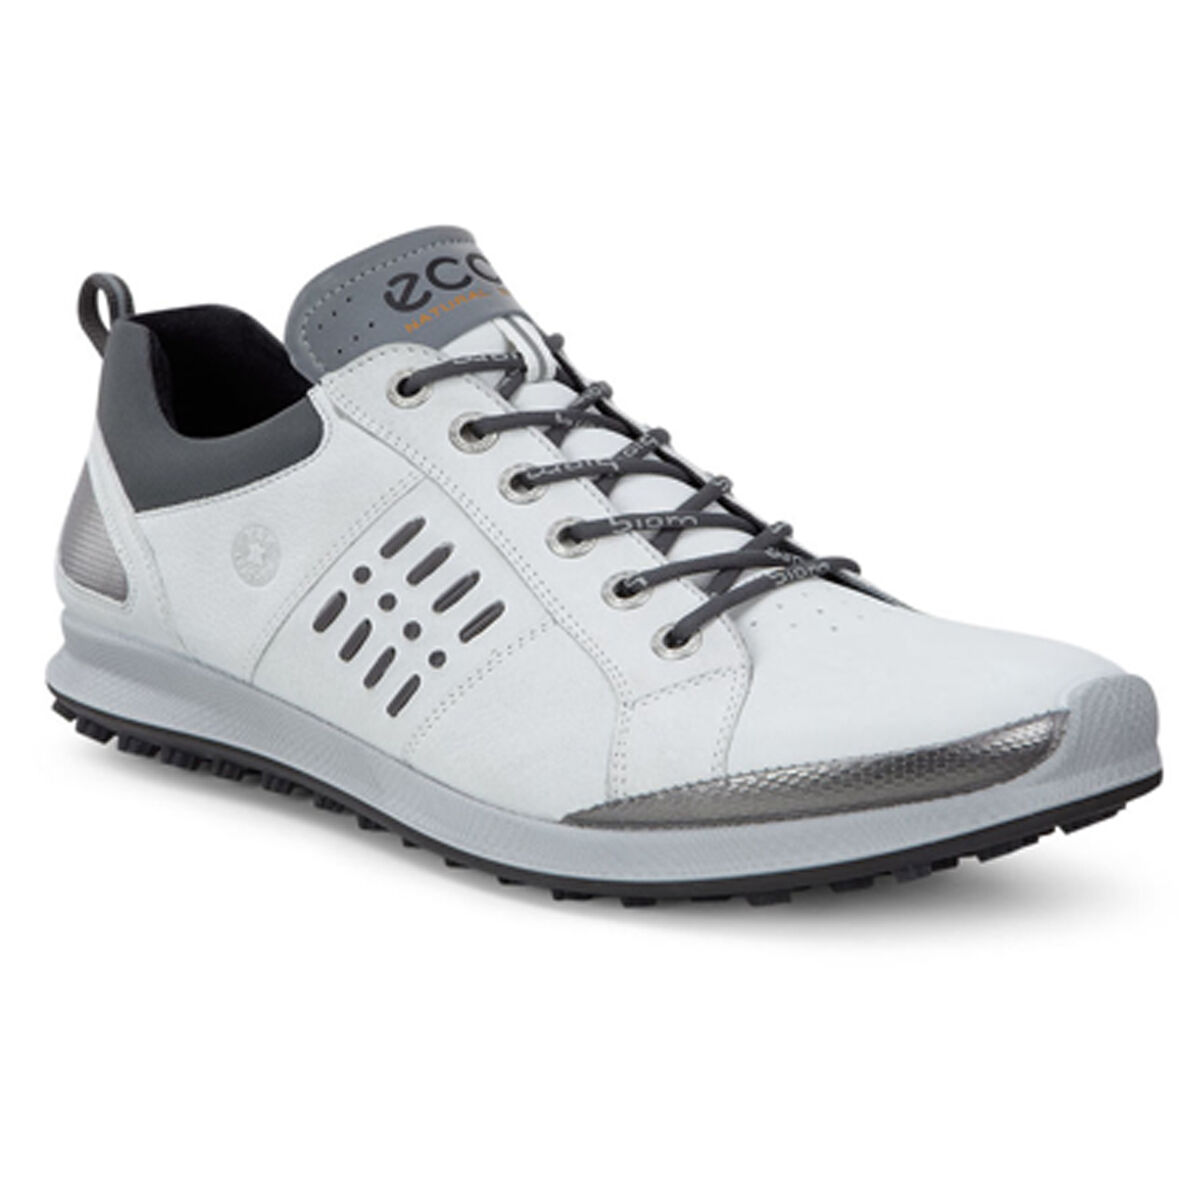 b4cb95fe0bea ECCO BIOM Hybrid 2 GTX Men s Golf Shoe - White Black